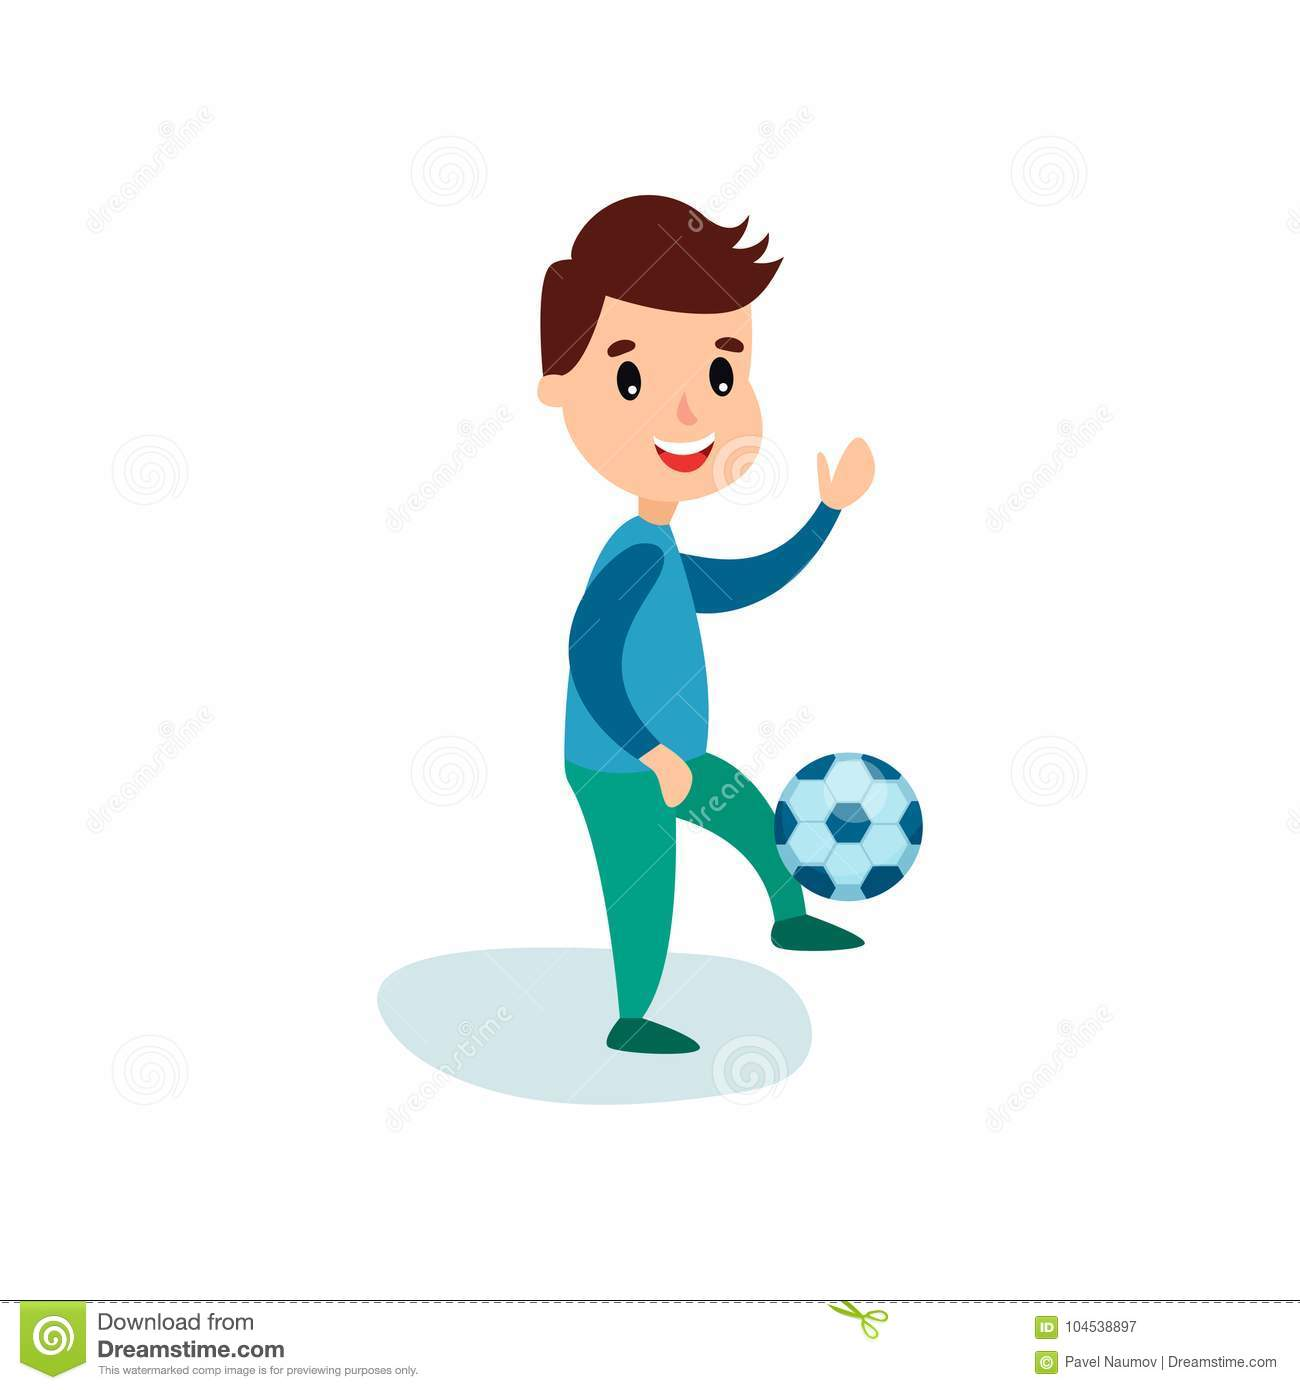 smiling little boy character kicking soccer ball, kids physical